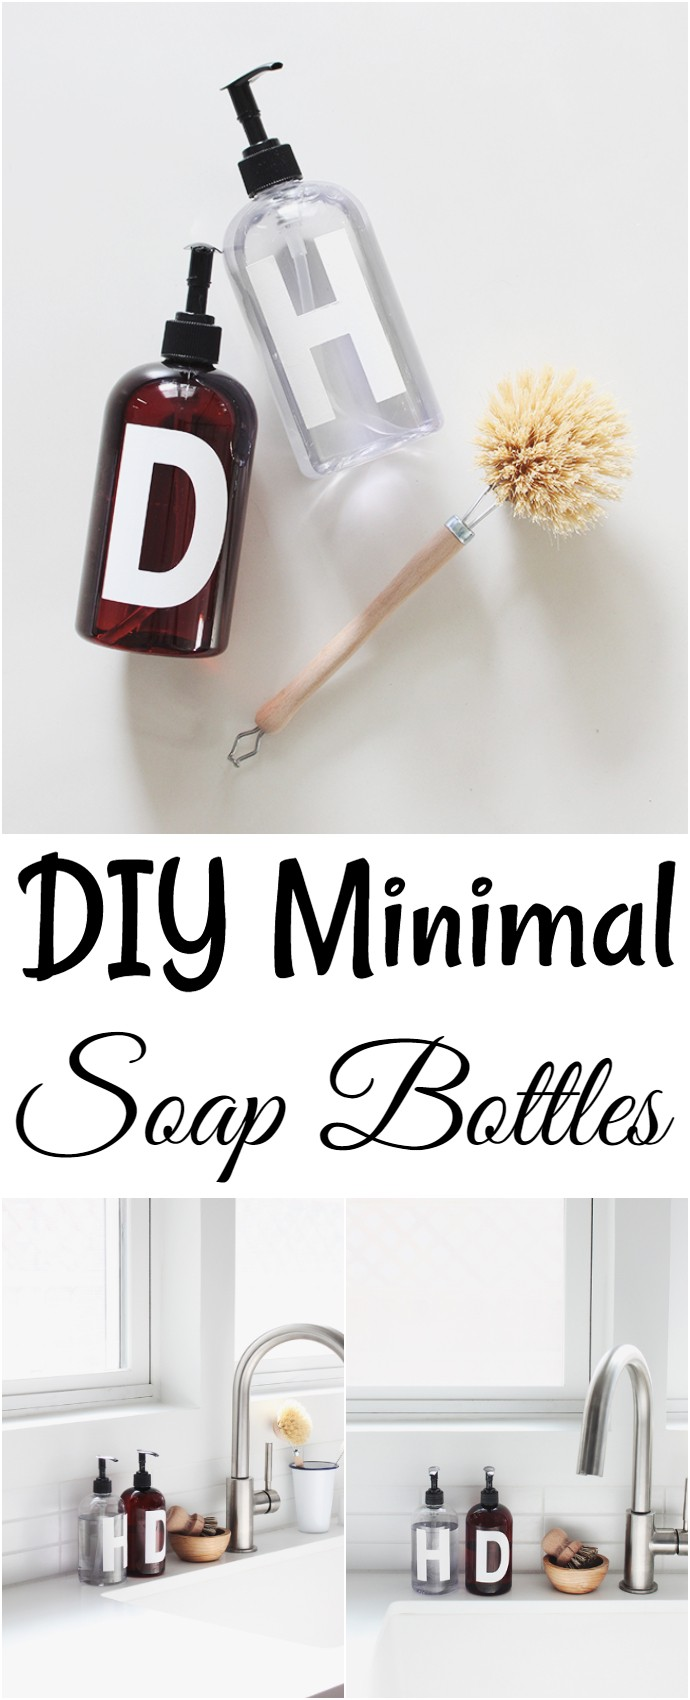 DIY Minimal Soap Bottles